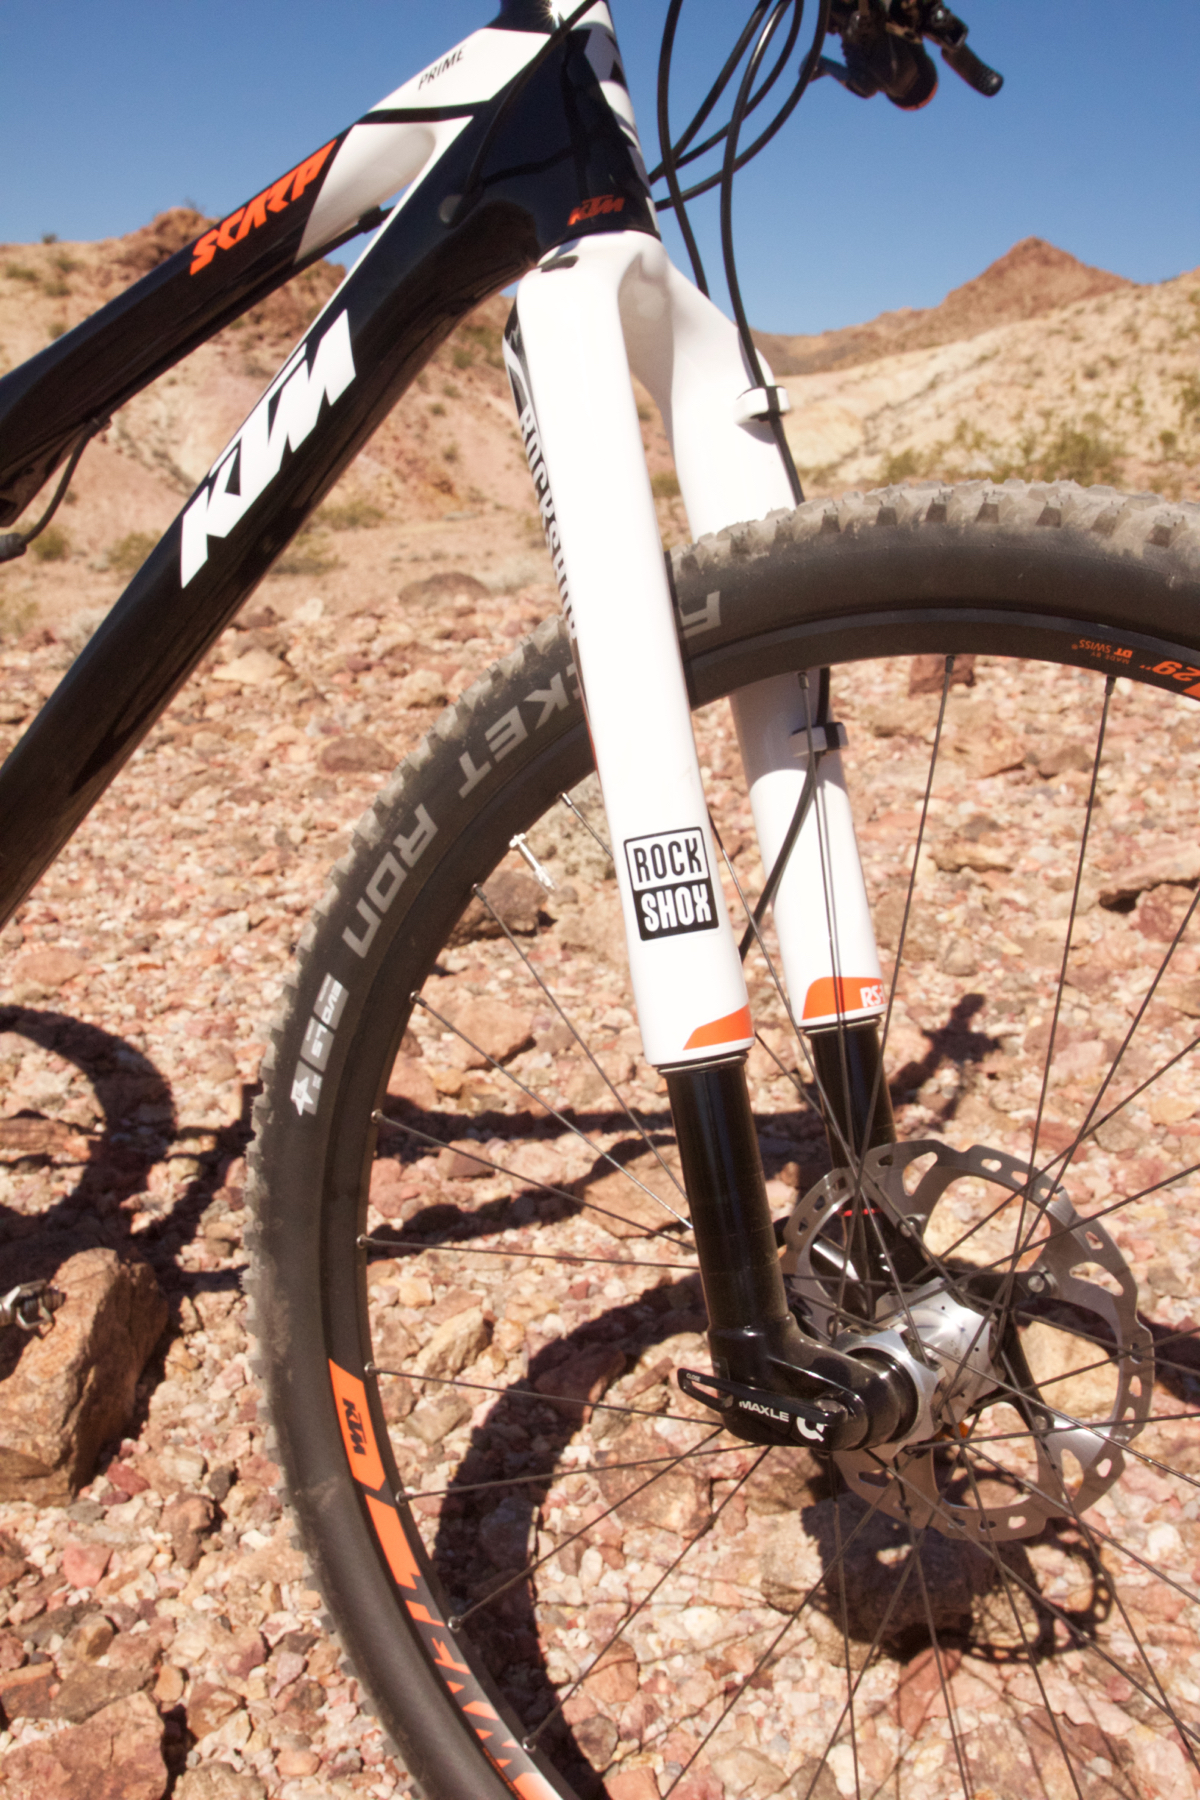 Ktm Scarp Prime Test Ride Review Singletracks Mountain Bike News